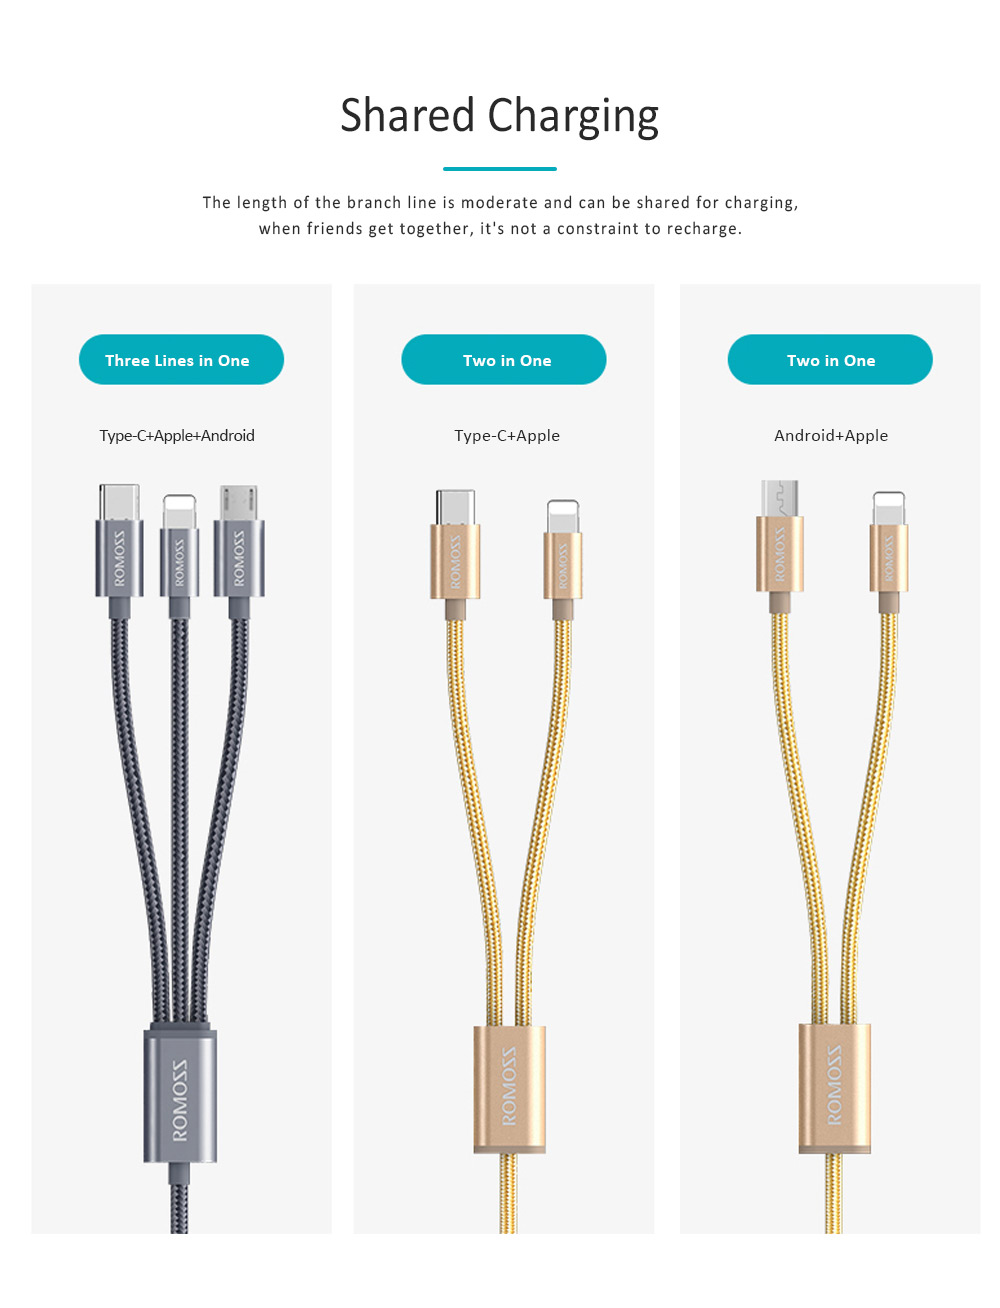 ROMOSS Vehicle-mounted Universal Charging Wire for iPhone 6/6s HUAWEI P20 Type-c Android Vivo Xiaomi Two in One Data Cable 1